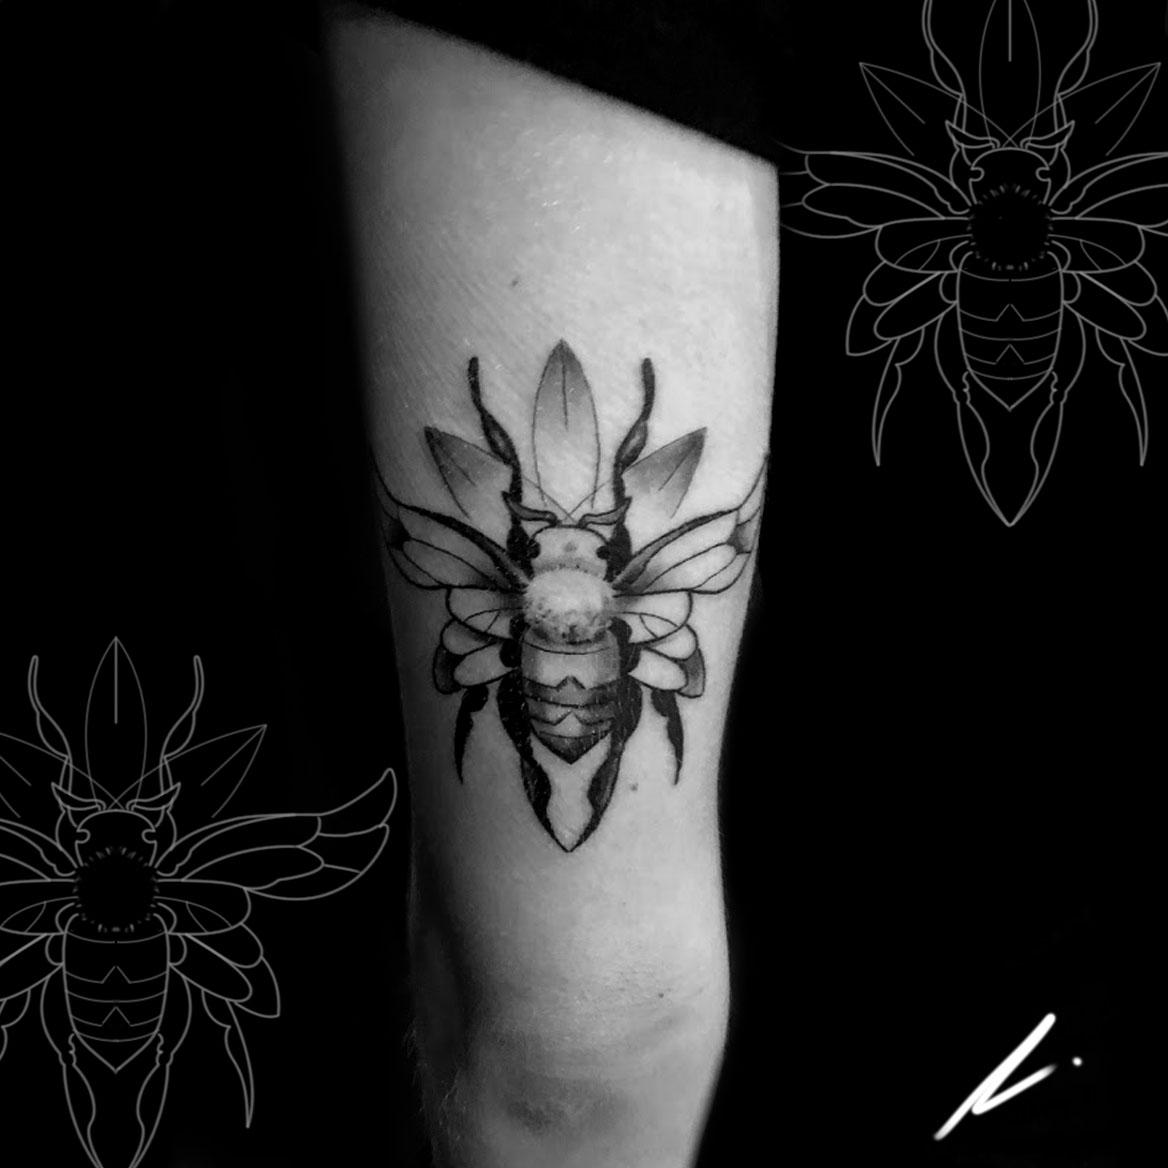 Little custom bee from a while back done by me at Hollywood Stars Tattoo in Los Angeles. Instagram: @rusty_hst